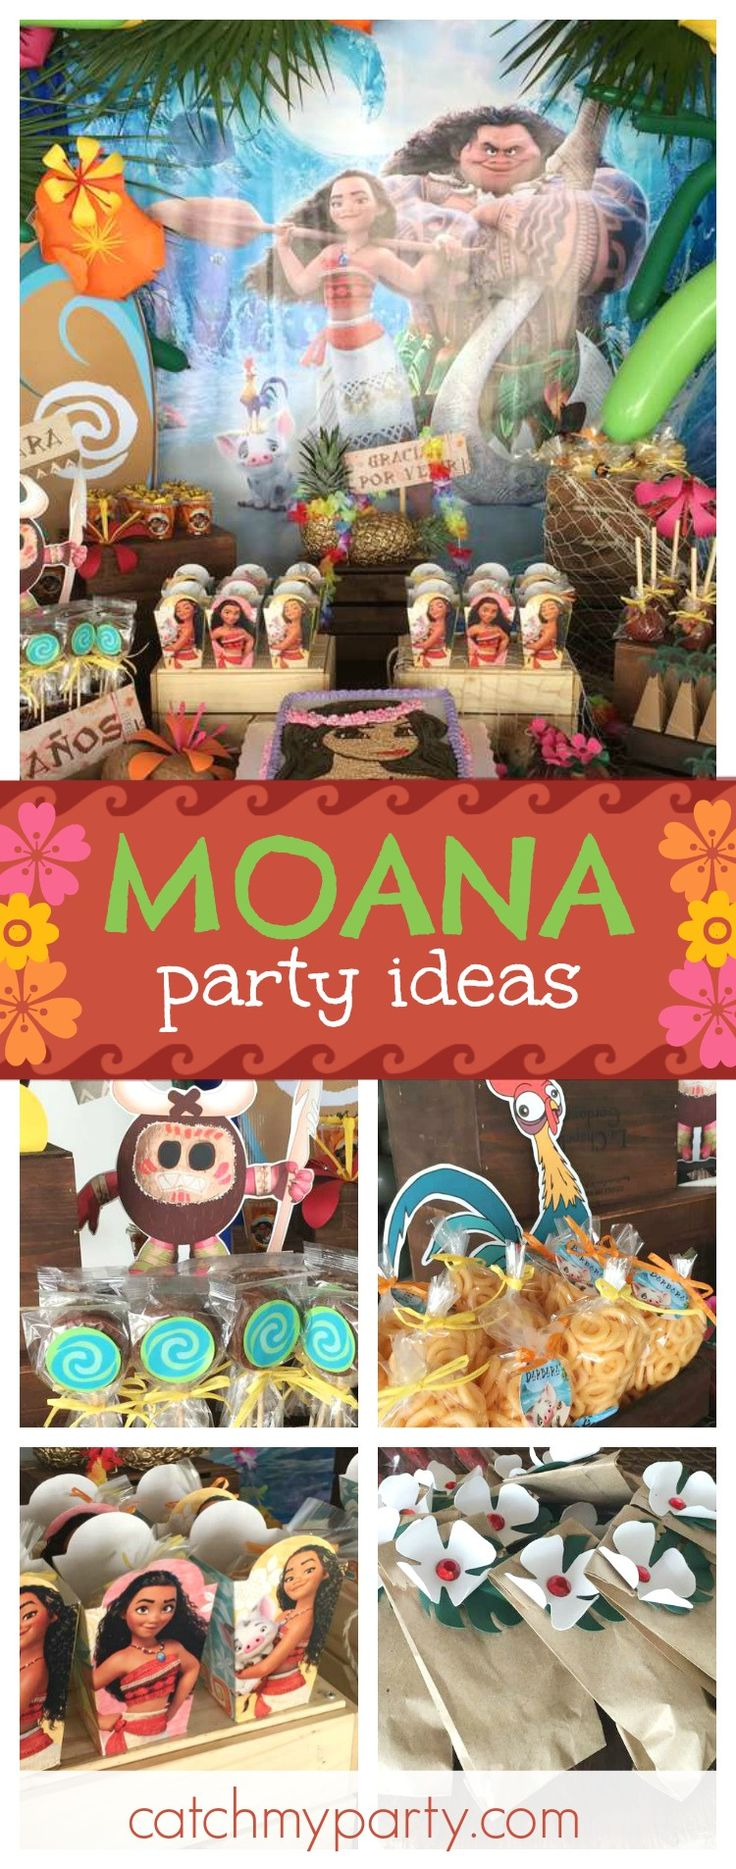 Check out this fantastic Moana Bash! The birthday cake is so awesome!! See more party ideas and share yours at CatchMyParty.com